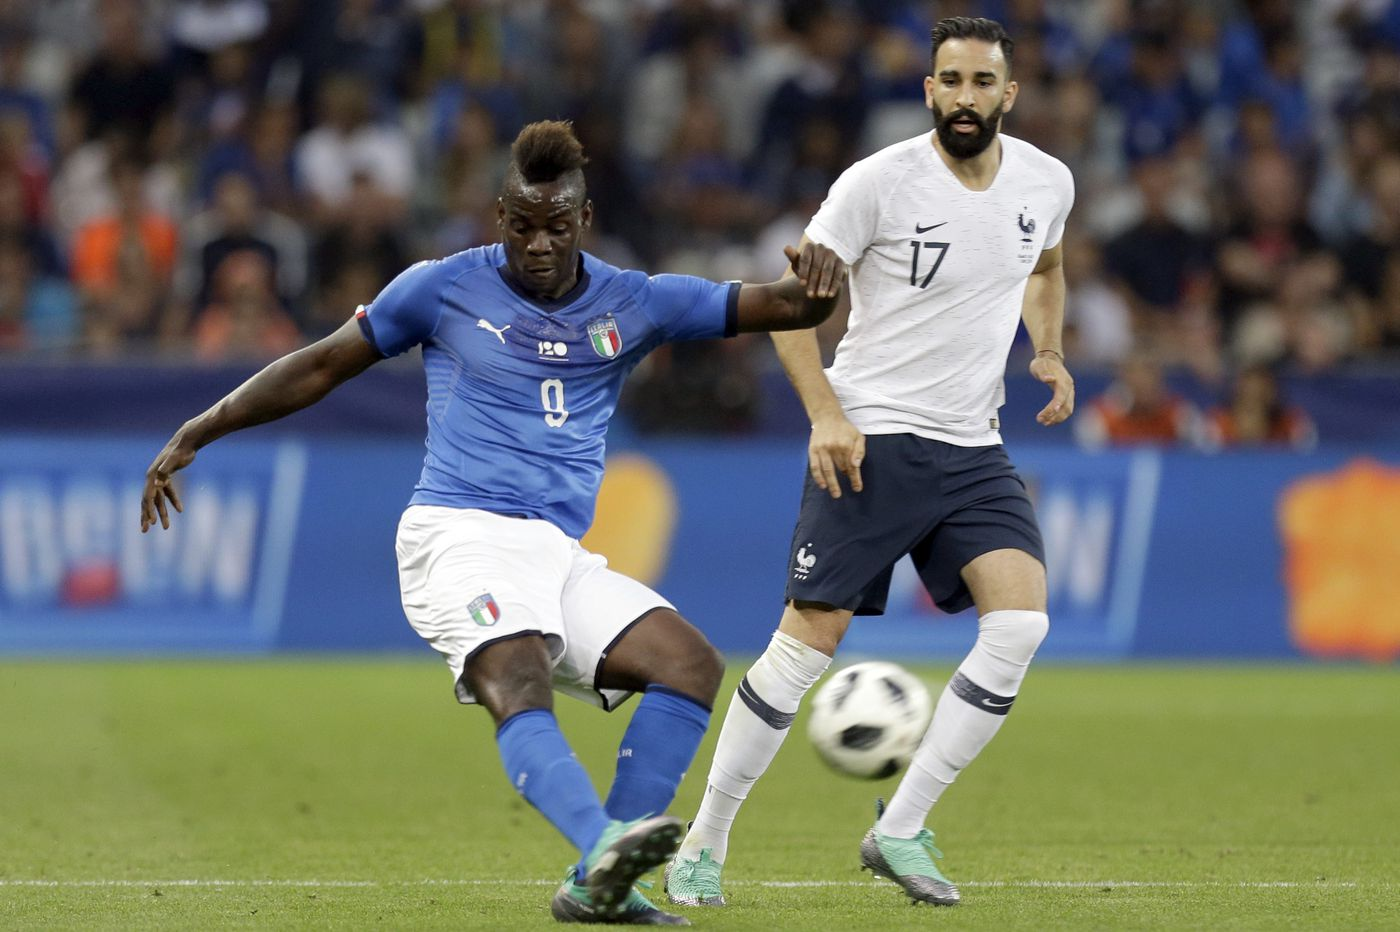 Reports linking Mario Balotelli to Union are false, Ernst Tanner says